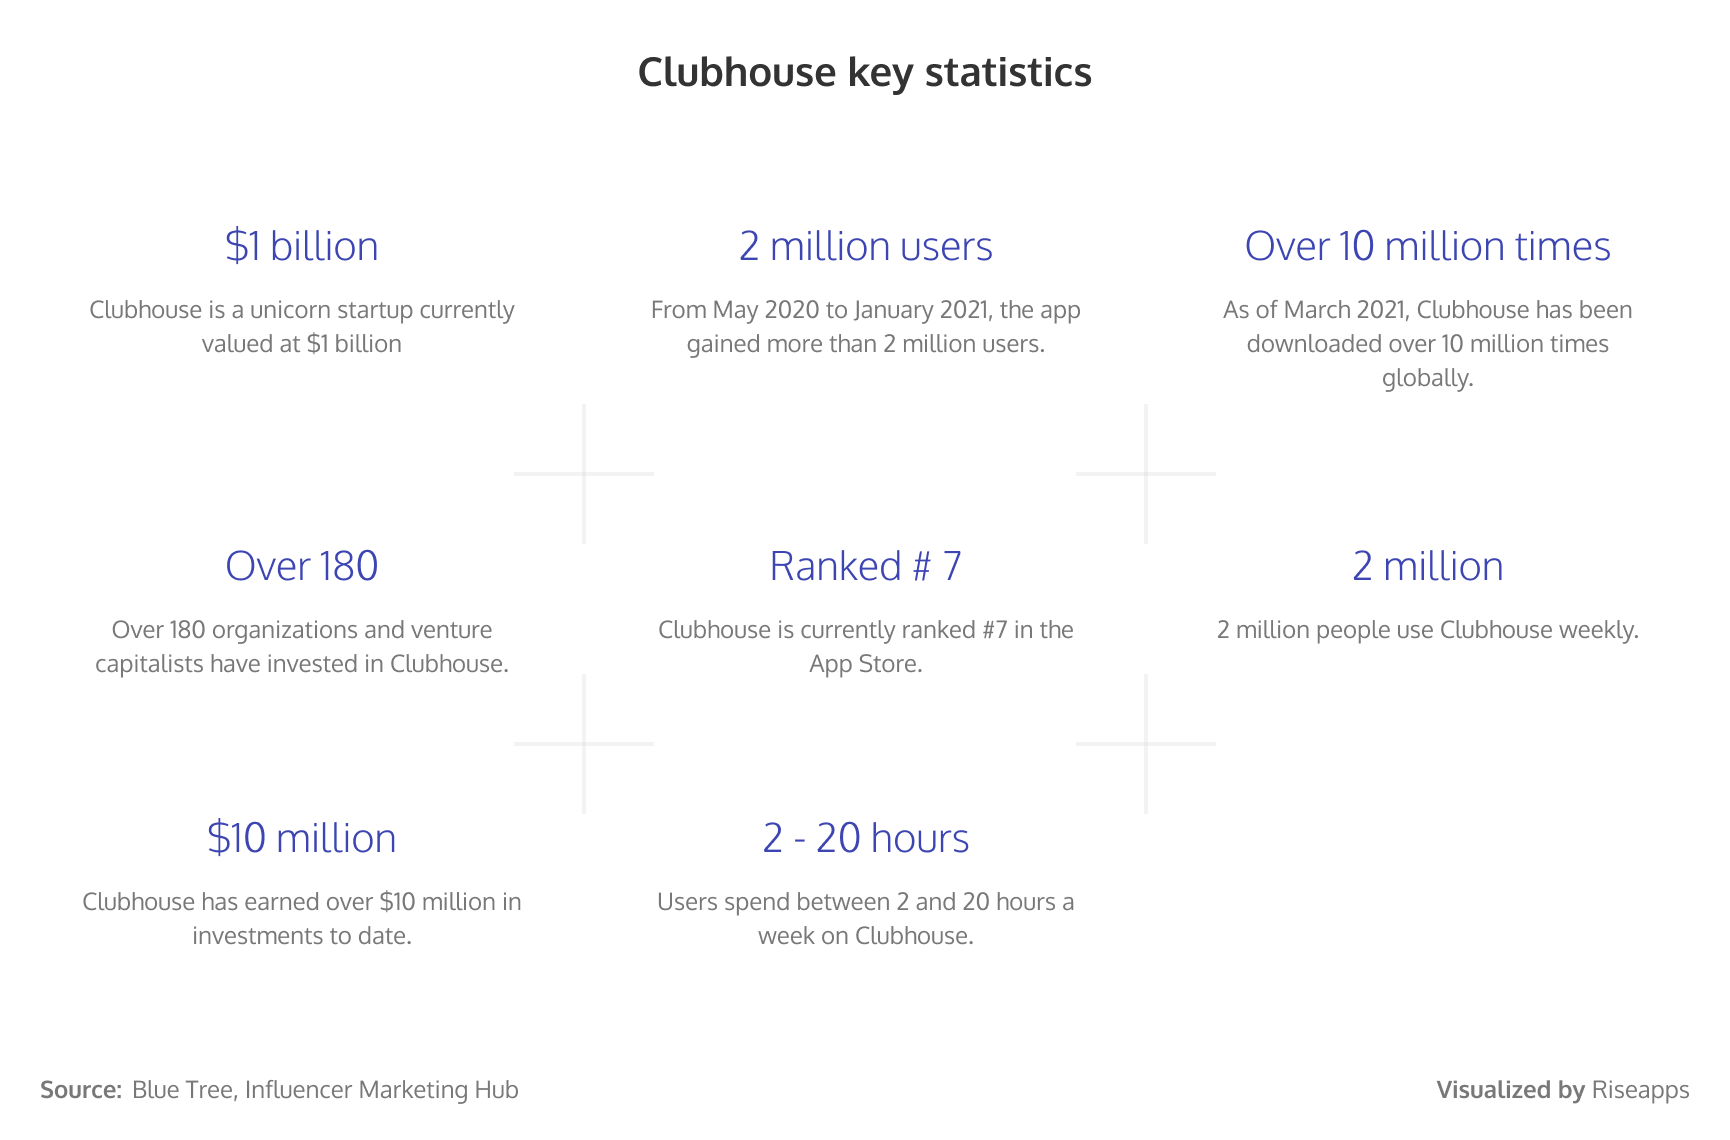 Clubhouse key statistics